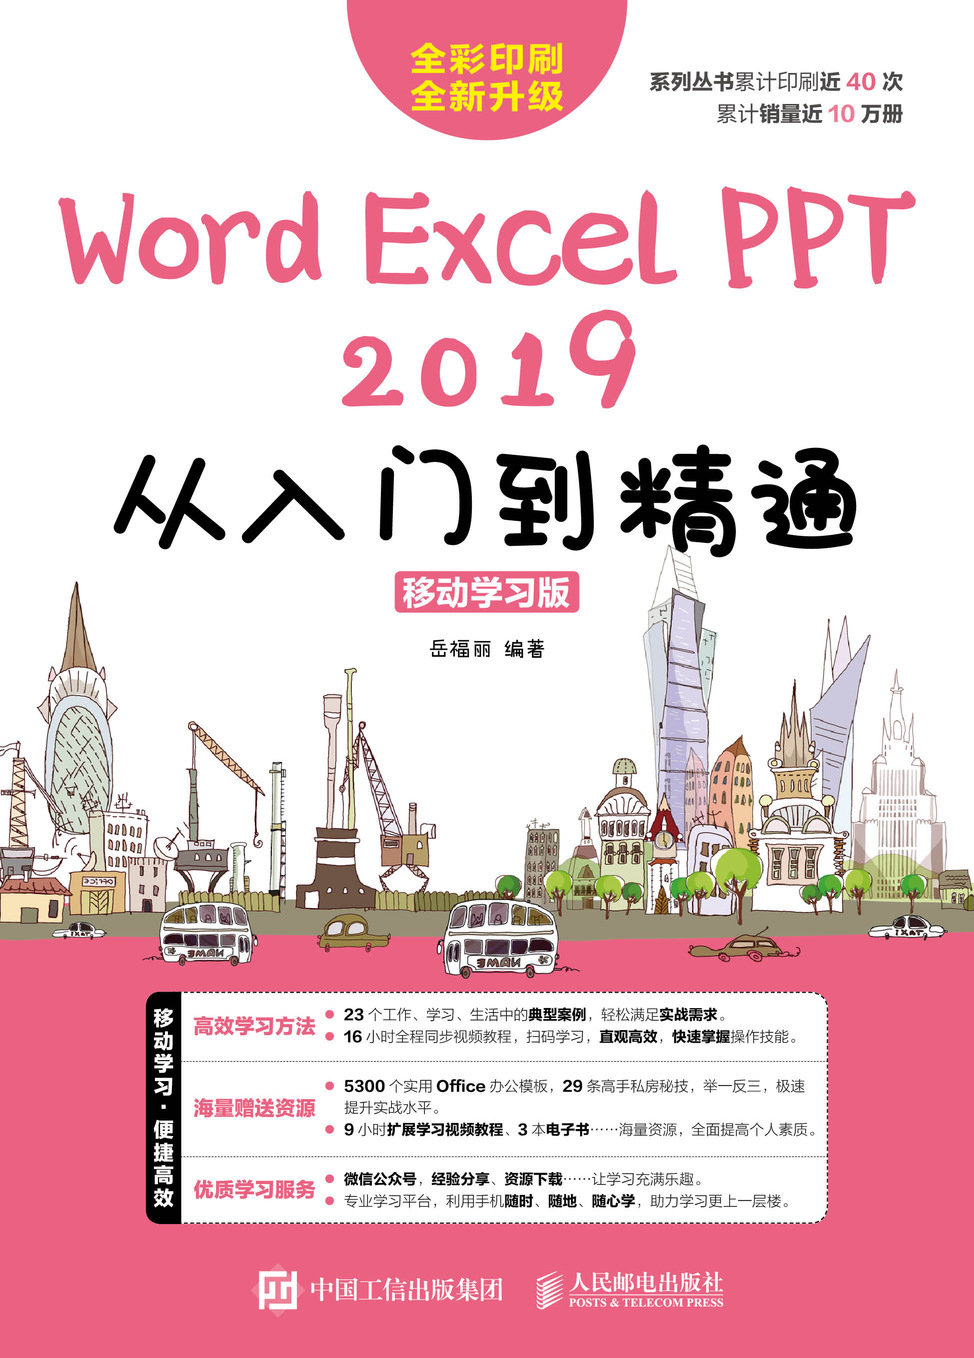 Word/Excel/PPT 2019從入門到精通 移動學習版-preview-1